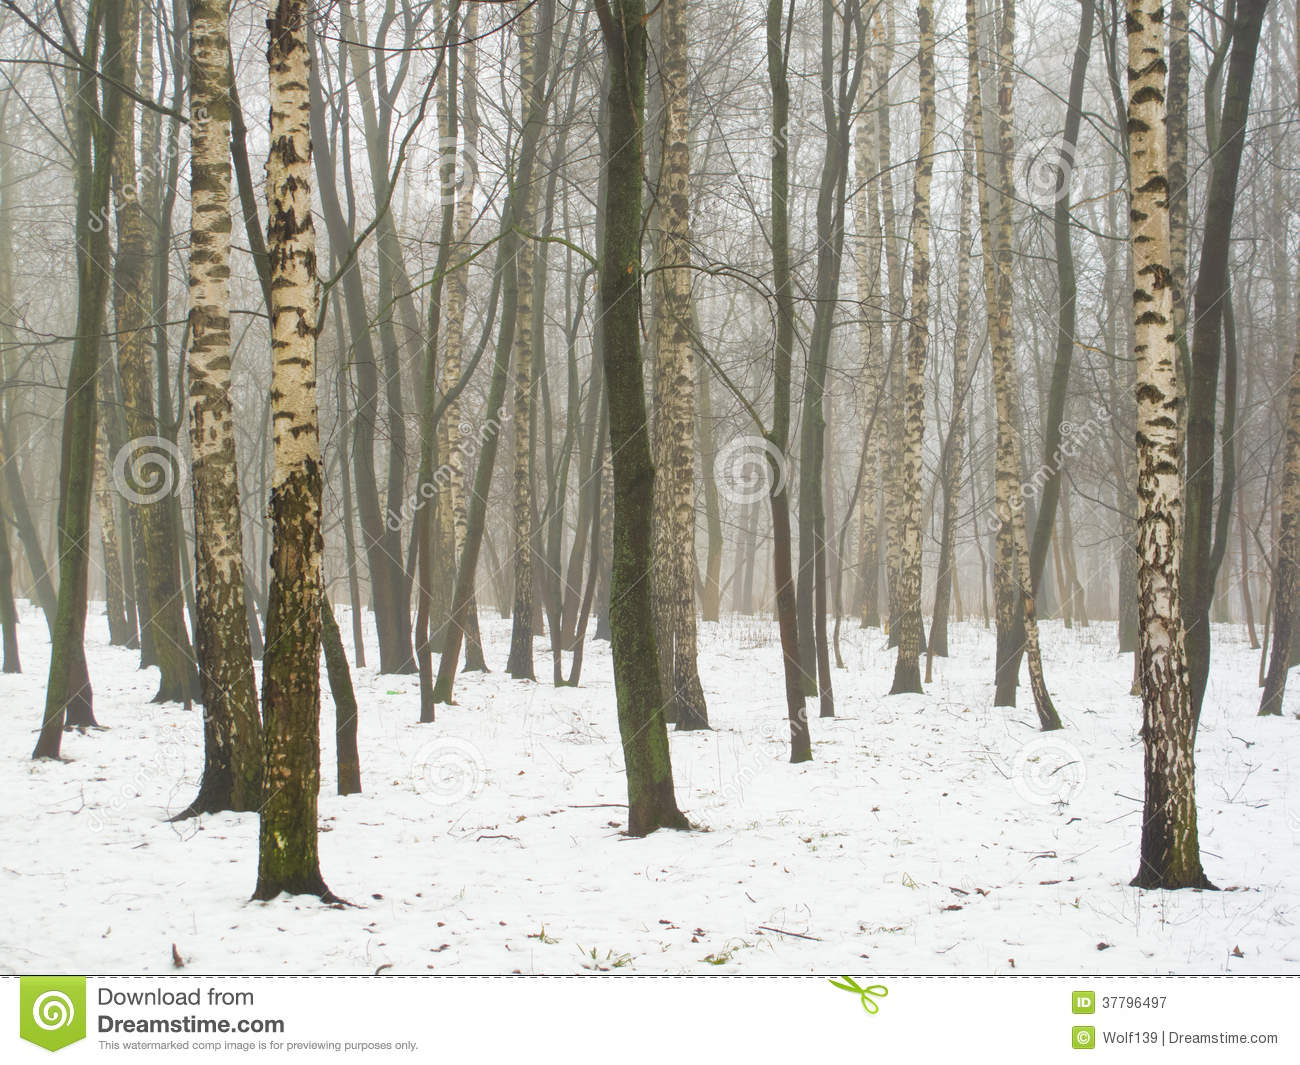 February grove in fog and snow